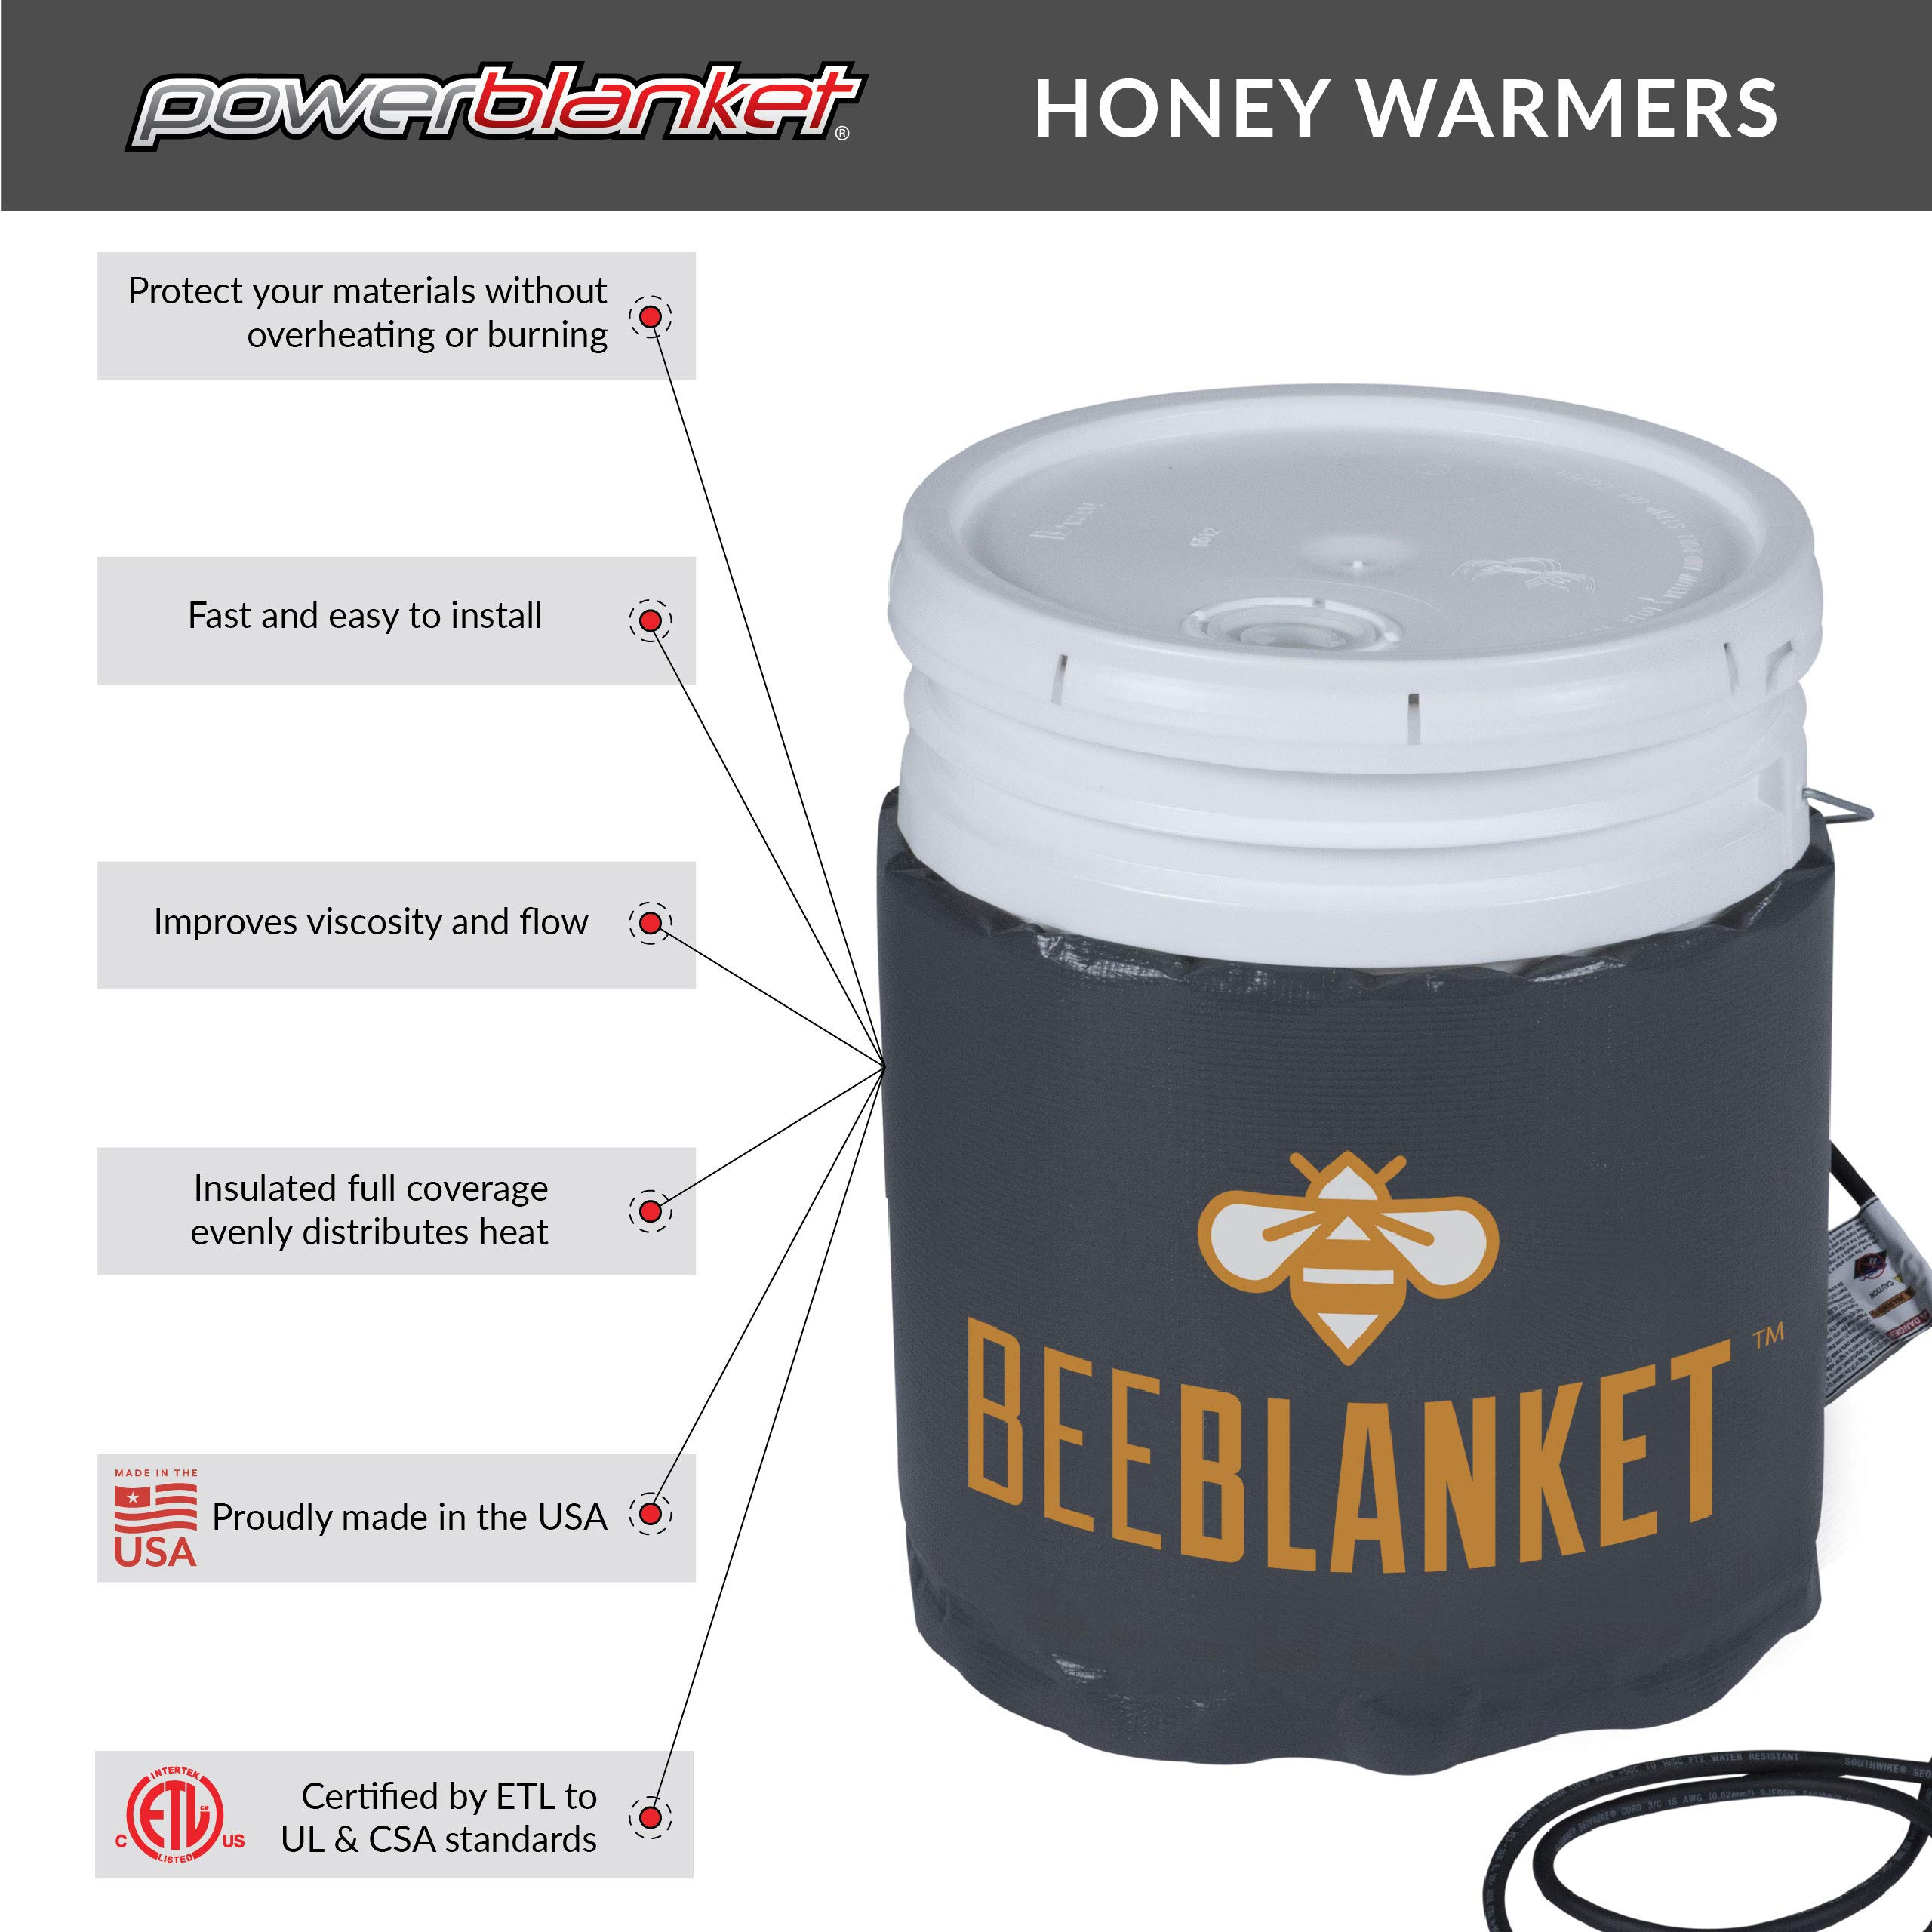 Powerblanket BB05PRO Bee Blanket 5-gallon Bucket Honey Warming Blanket, Ideal for warming solid or crystallized honey, Adjustable Controller, Max Temp 145°F